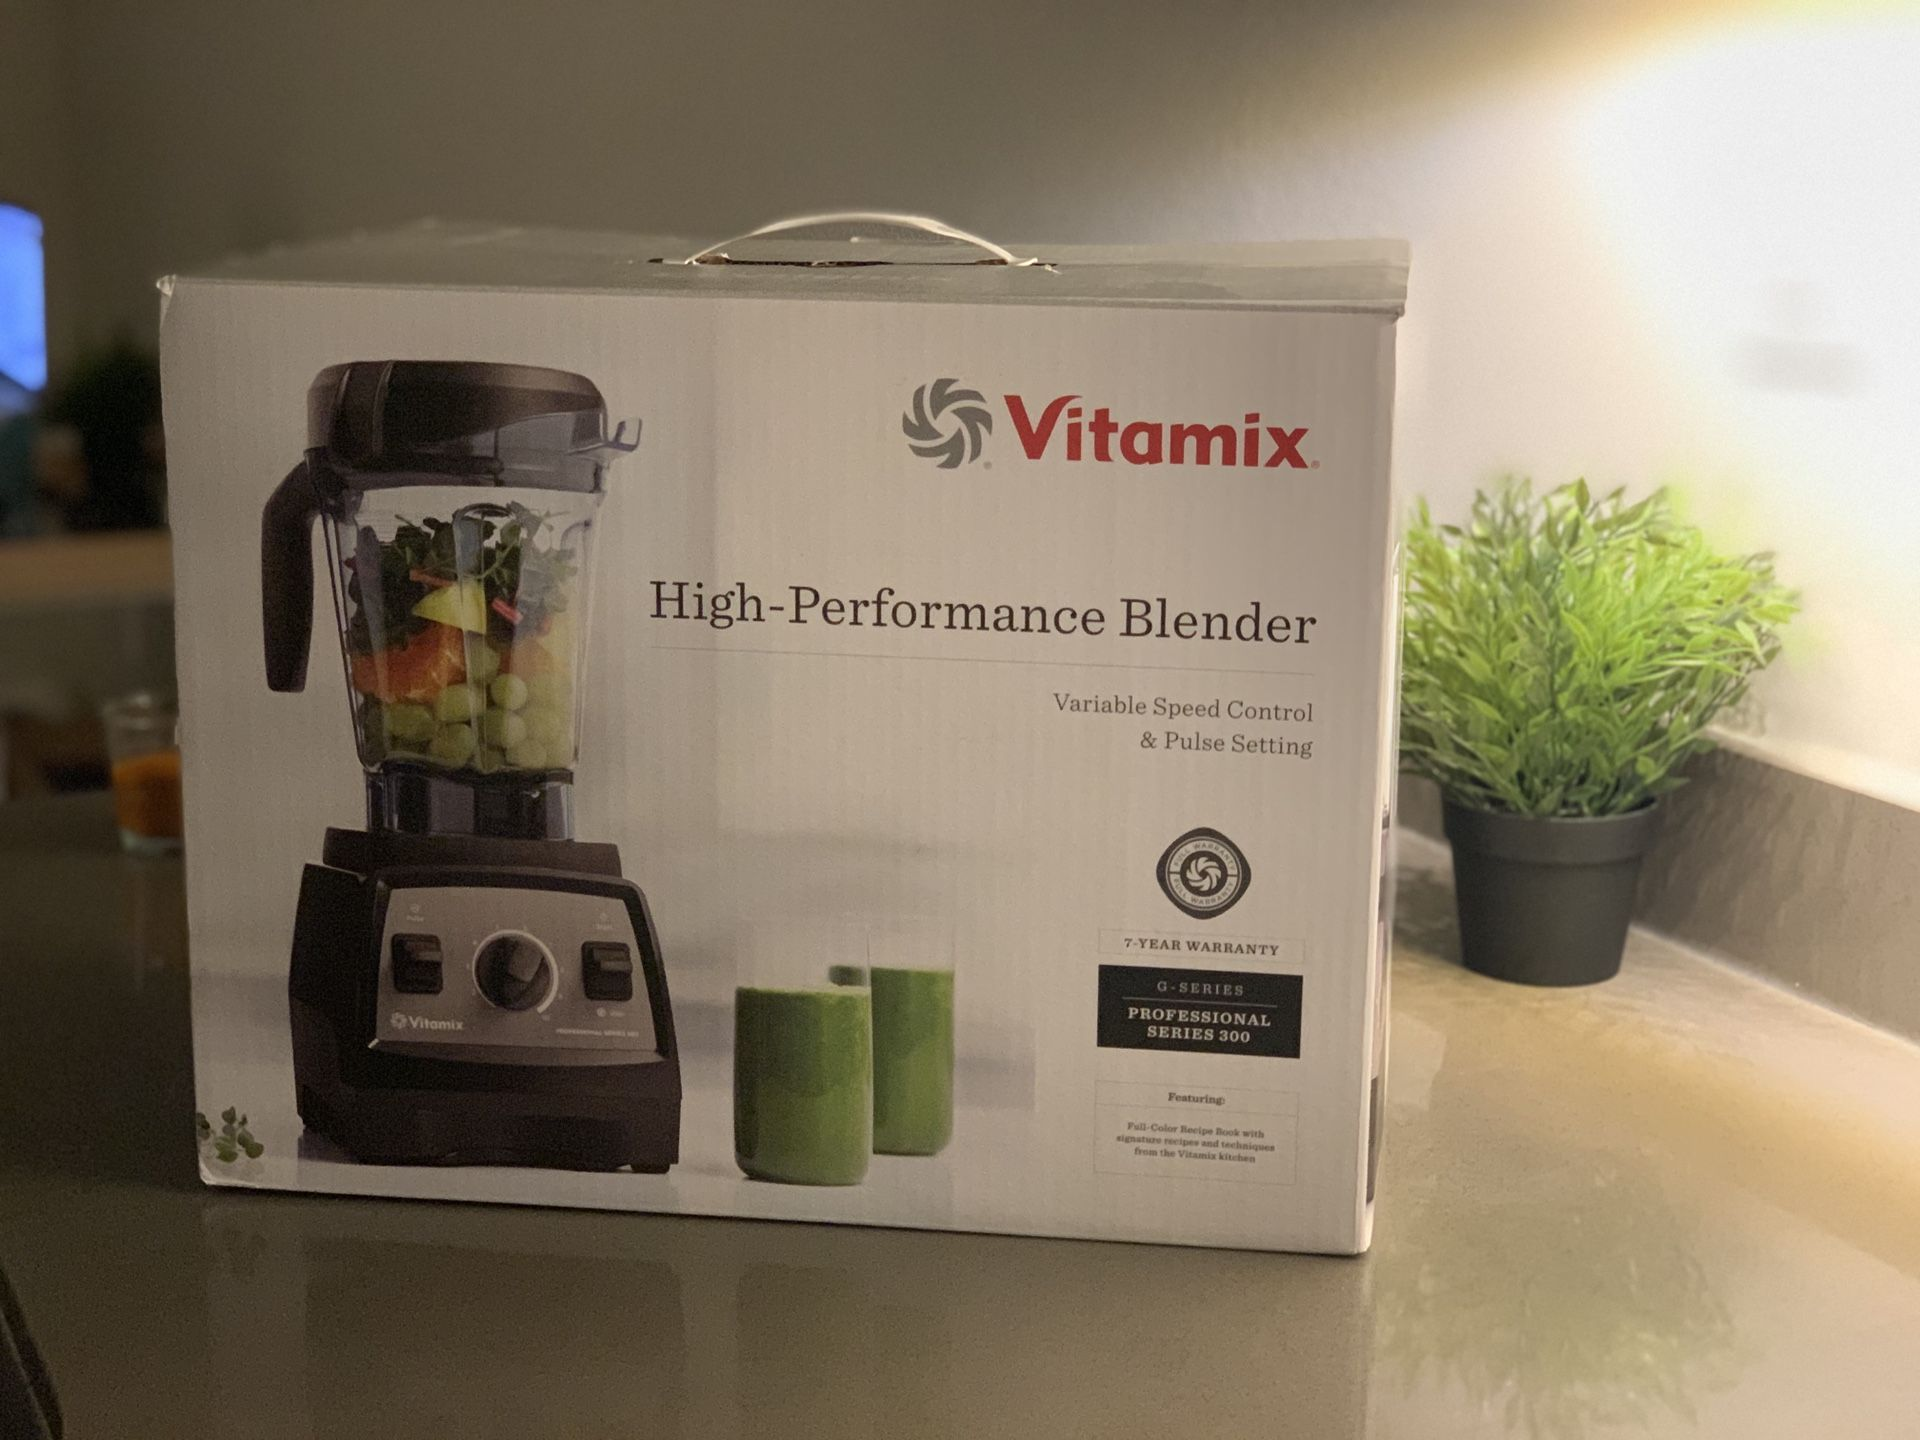 Vitamix professional series 300 powerful blender with the box, recipe book and warranty